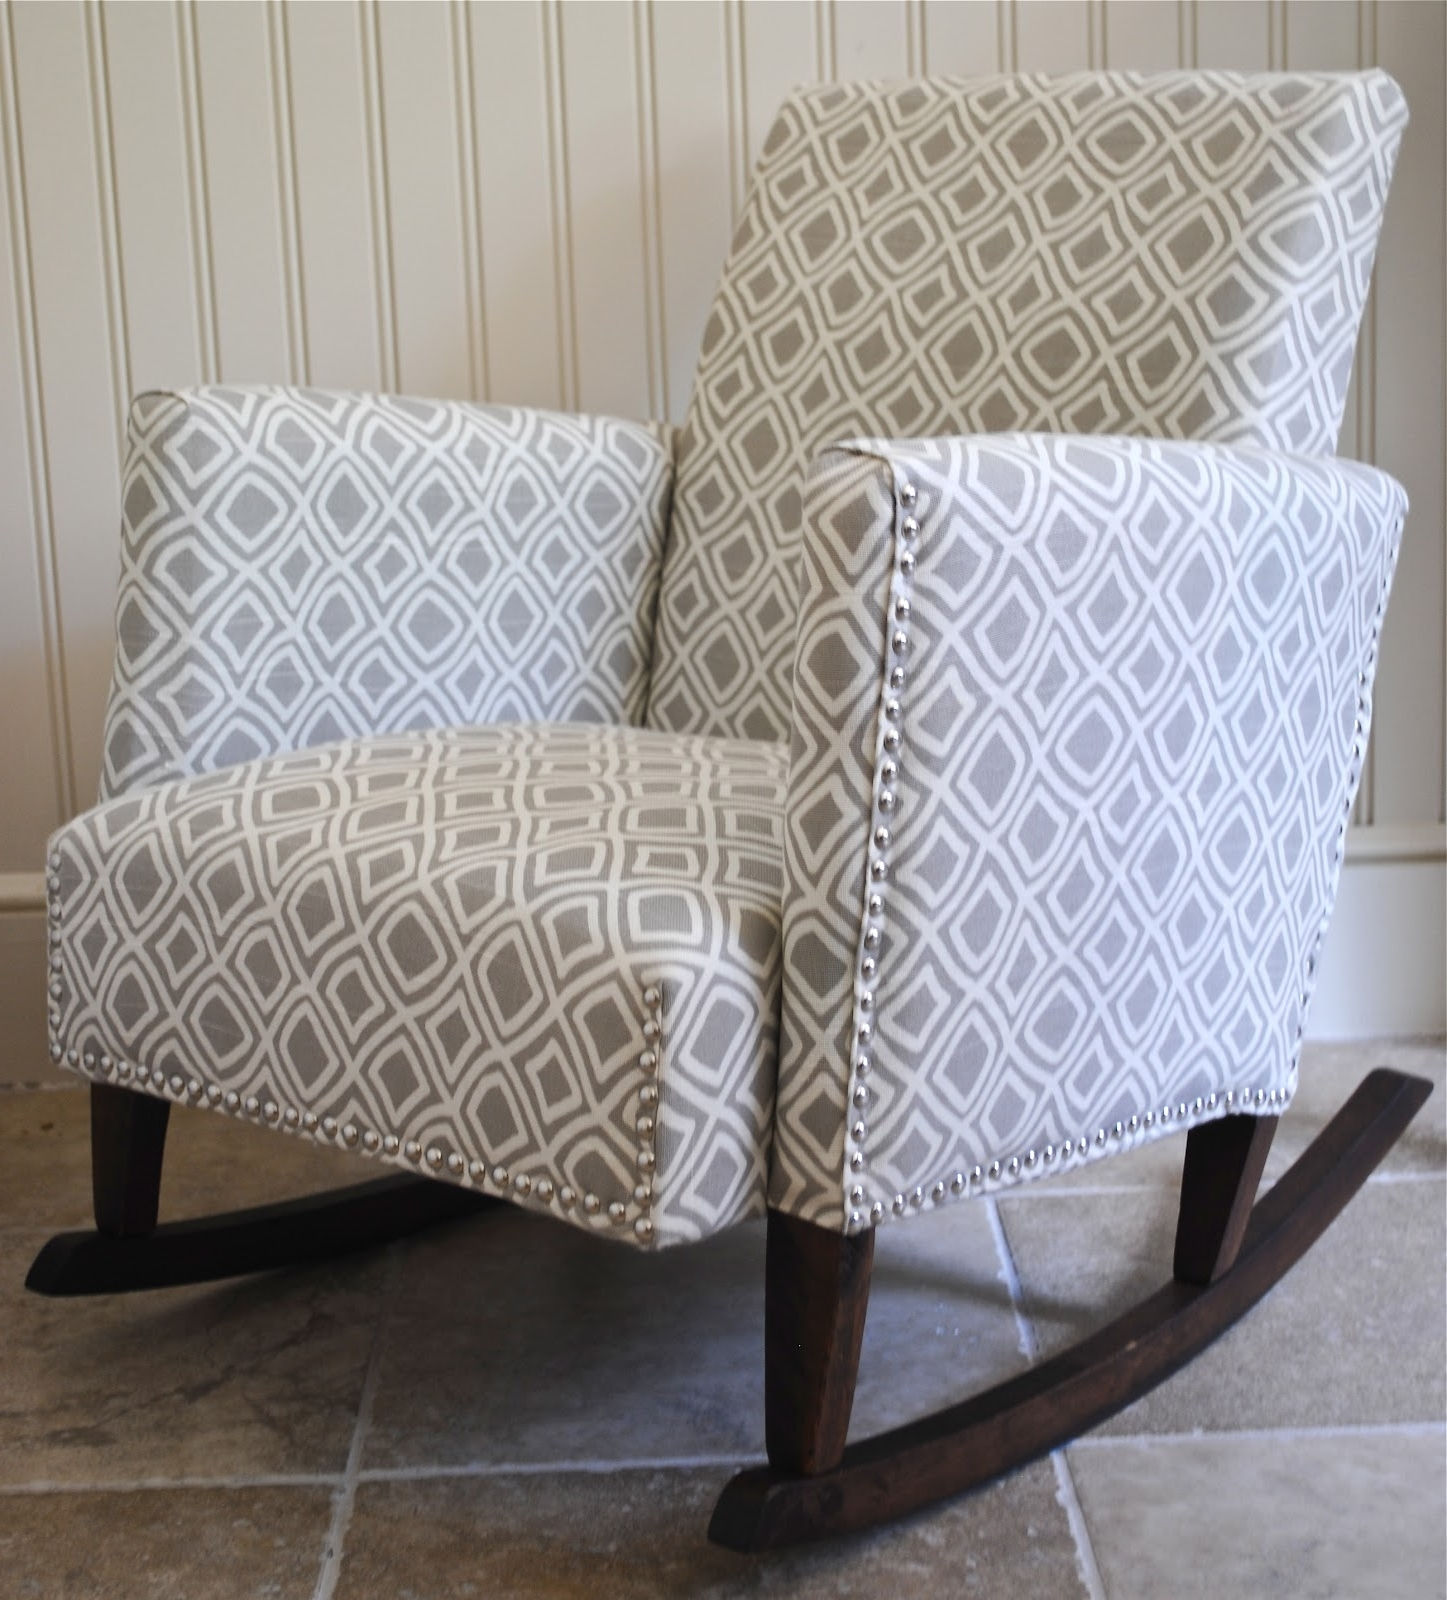 Upholstered Rocking Chairs Within 2019 Diy}Ish Upholstered Child's Rocking Chair – The Chronicles Of Home (Gallery 2 of 20)